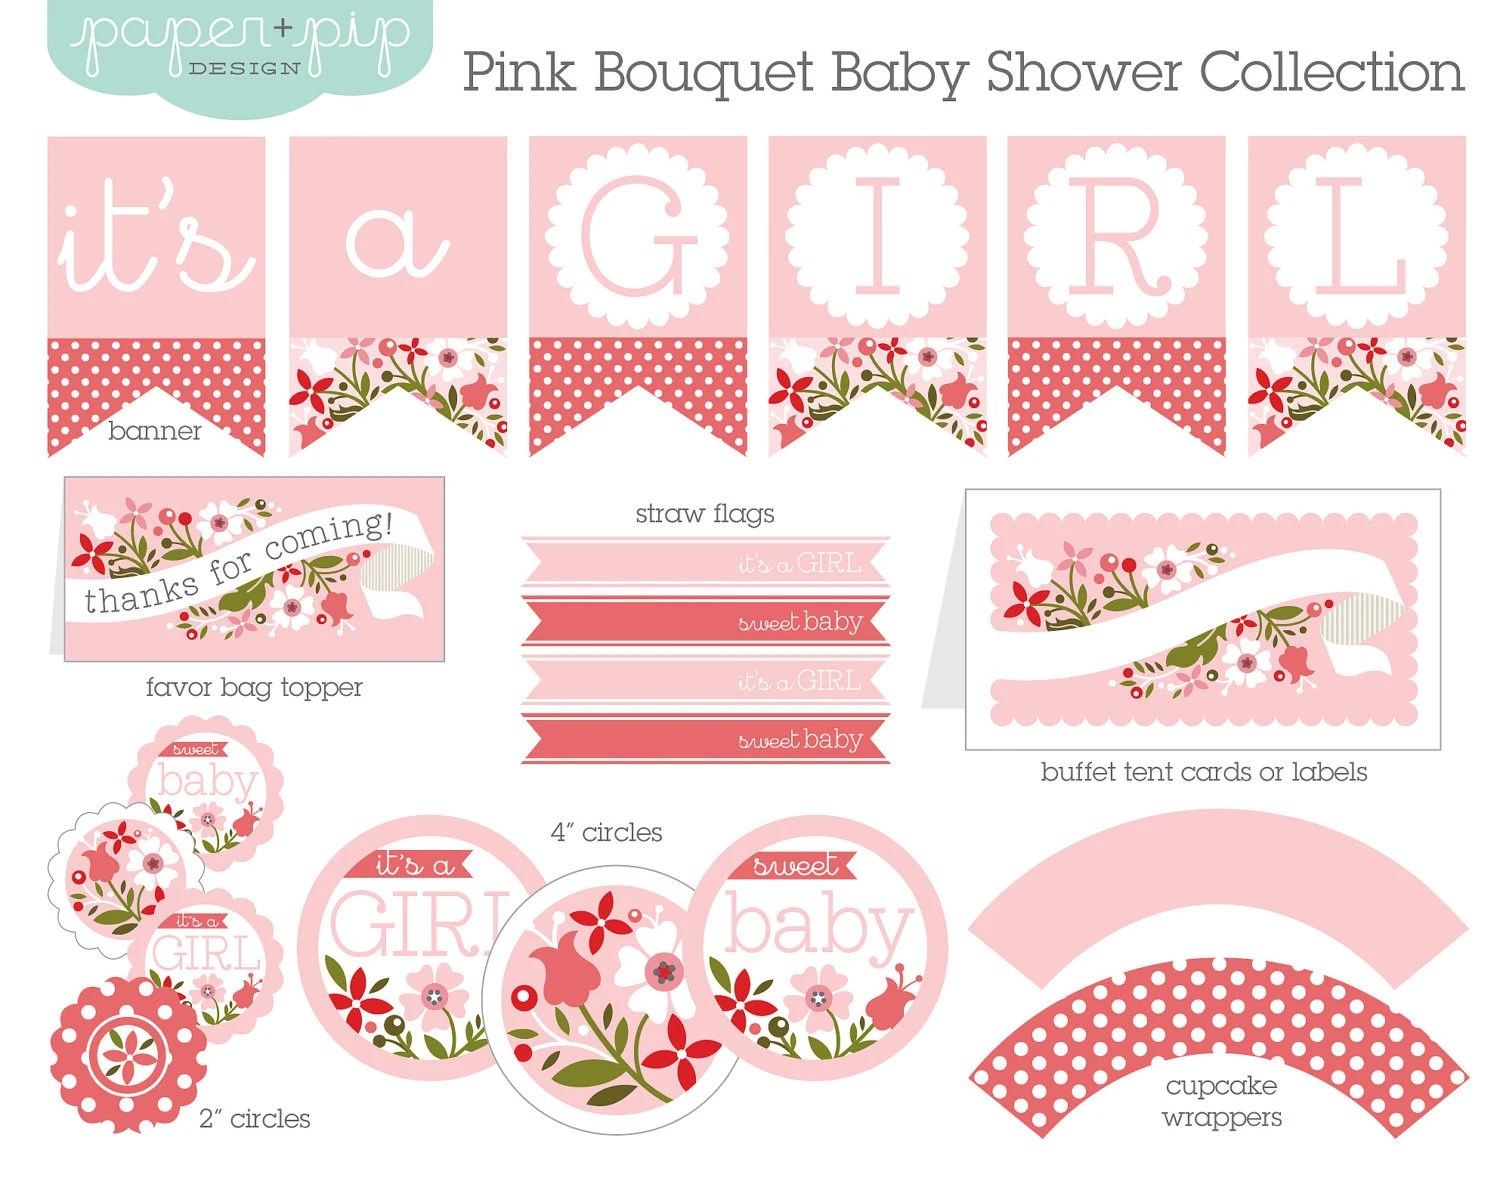 Baby Shower Decorations Printable Pink Bouquet